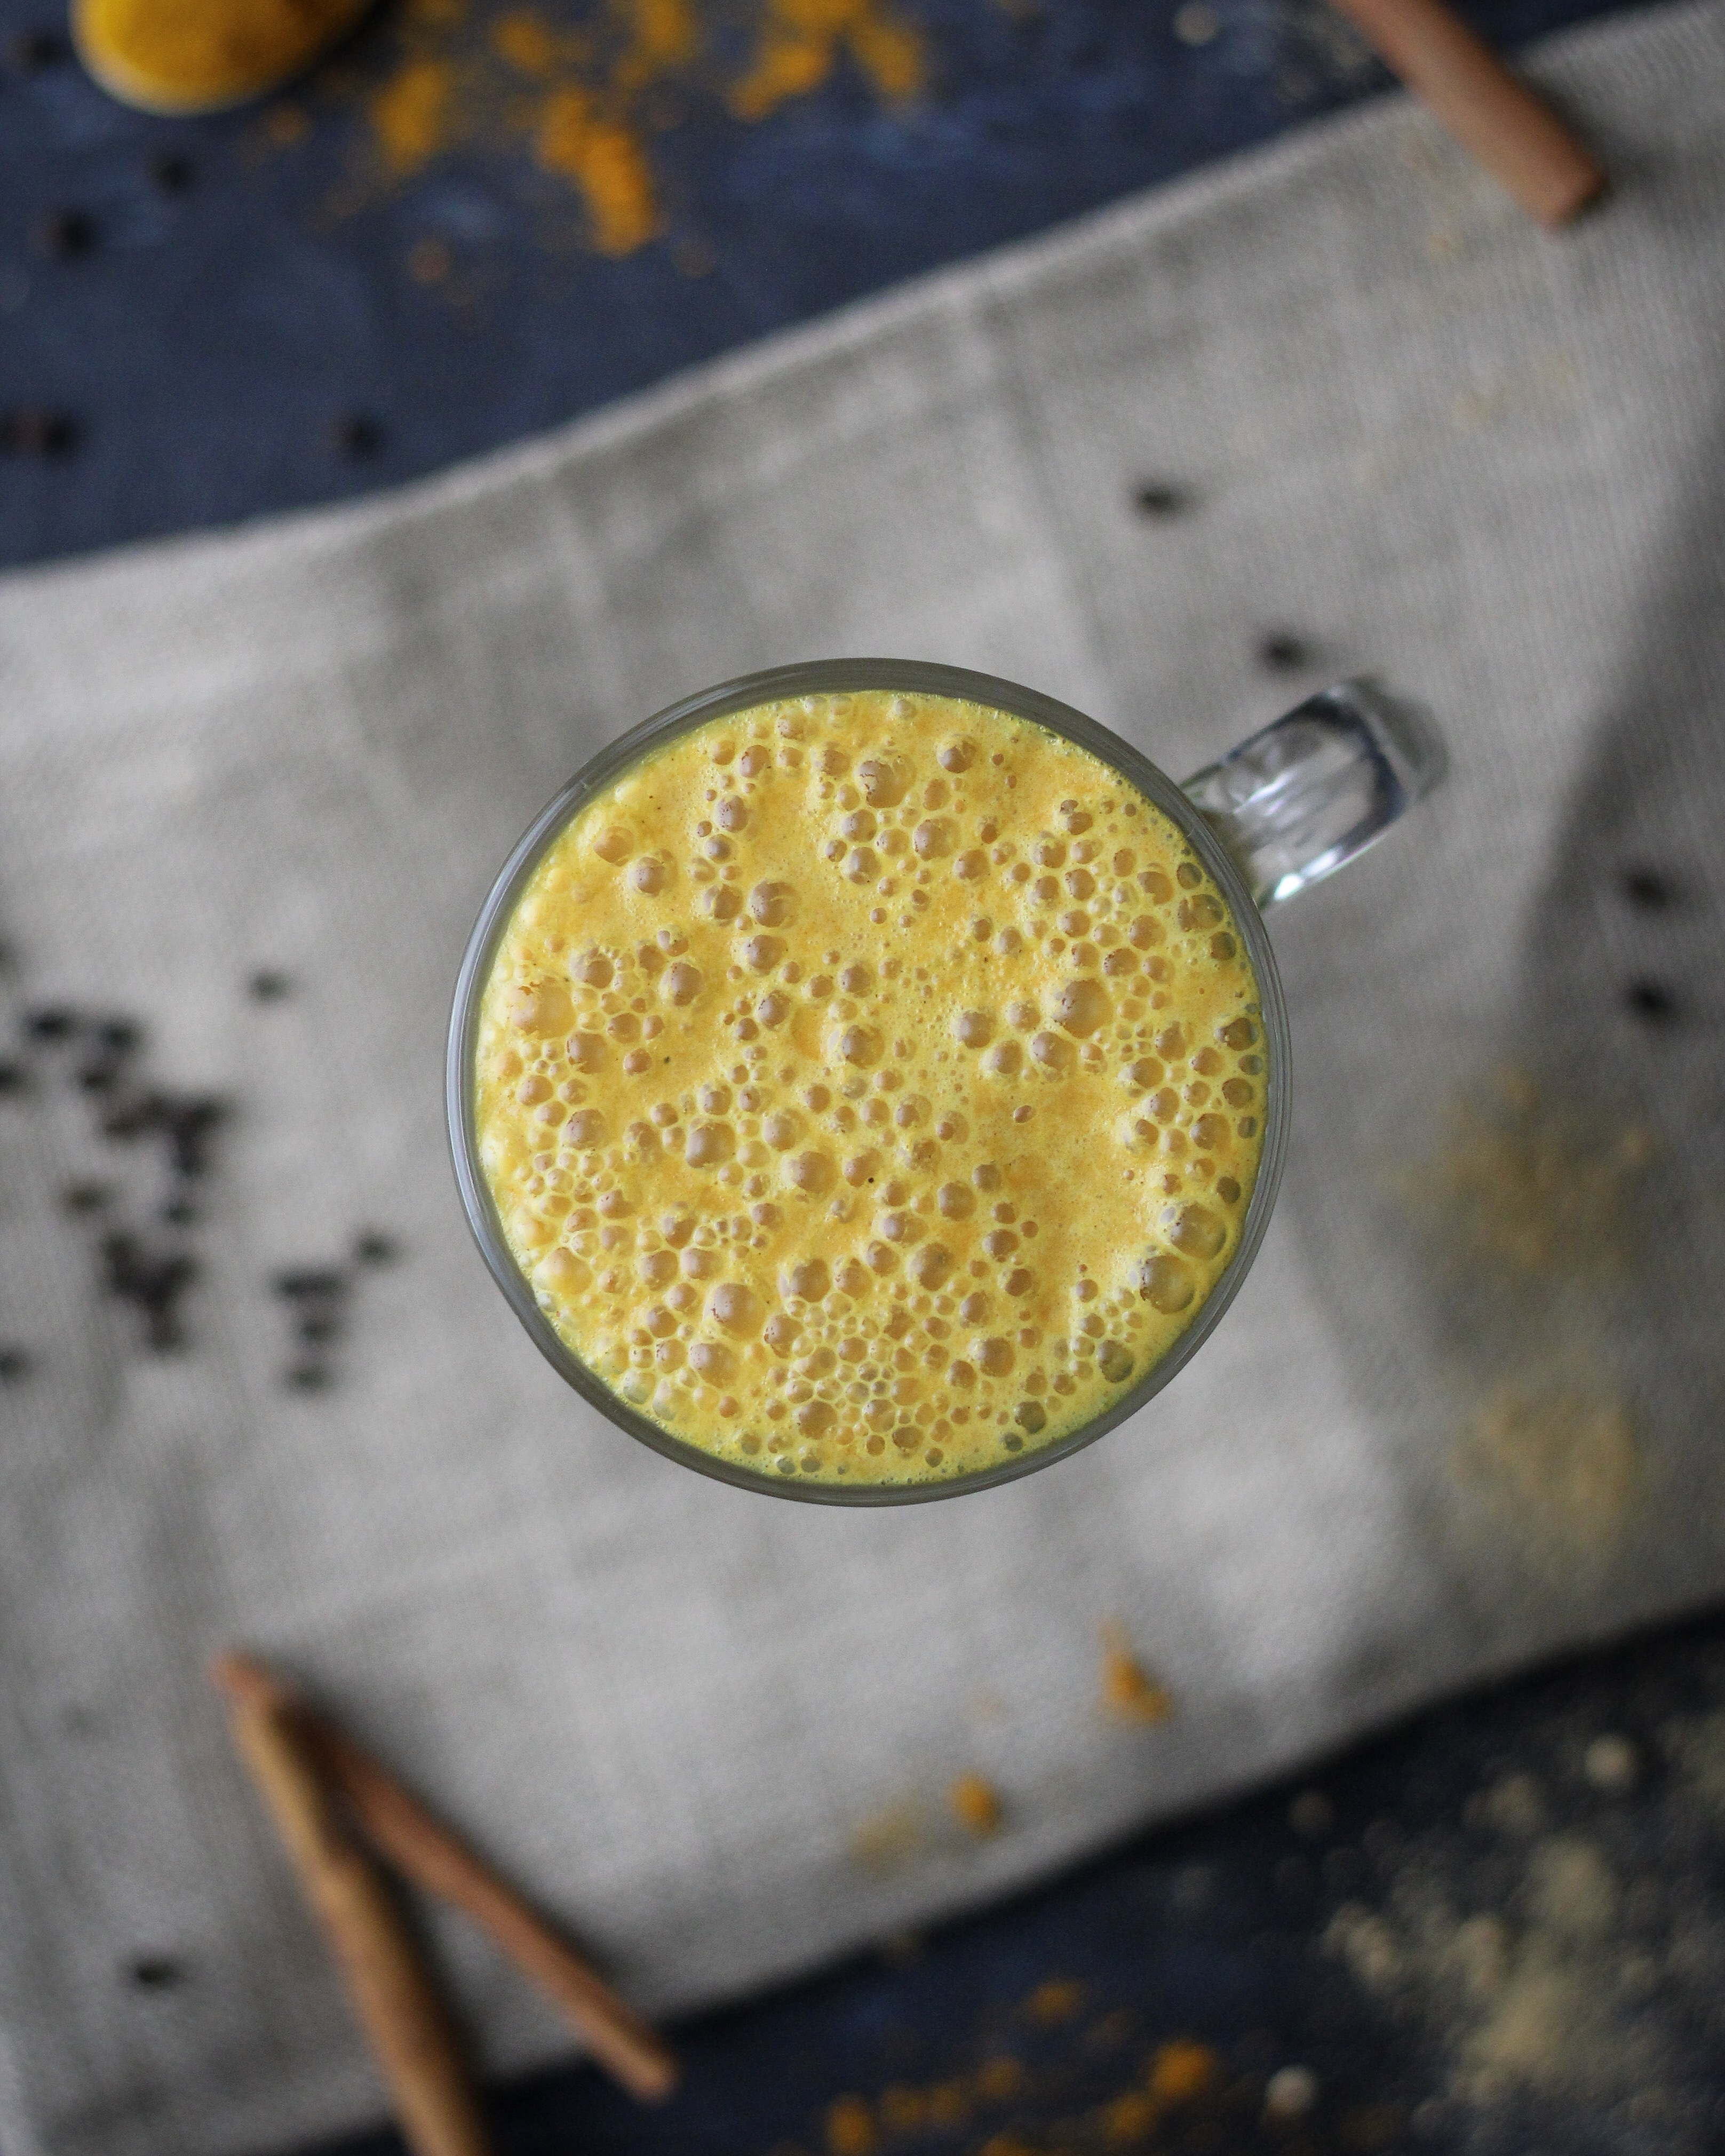 Vegan Golden Milk (or Turmeric Latte) a delicious drink for all seasons, that also boosts immunity and digestion.